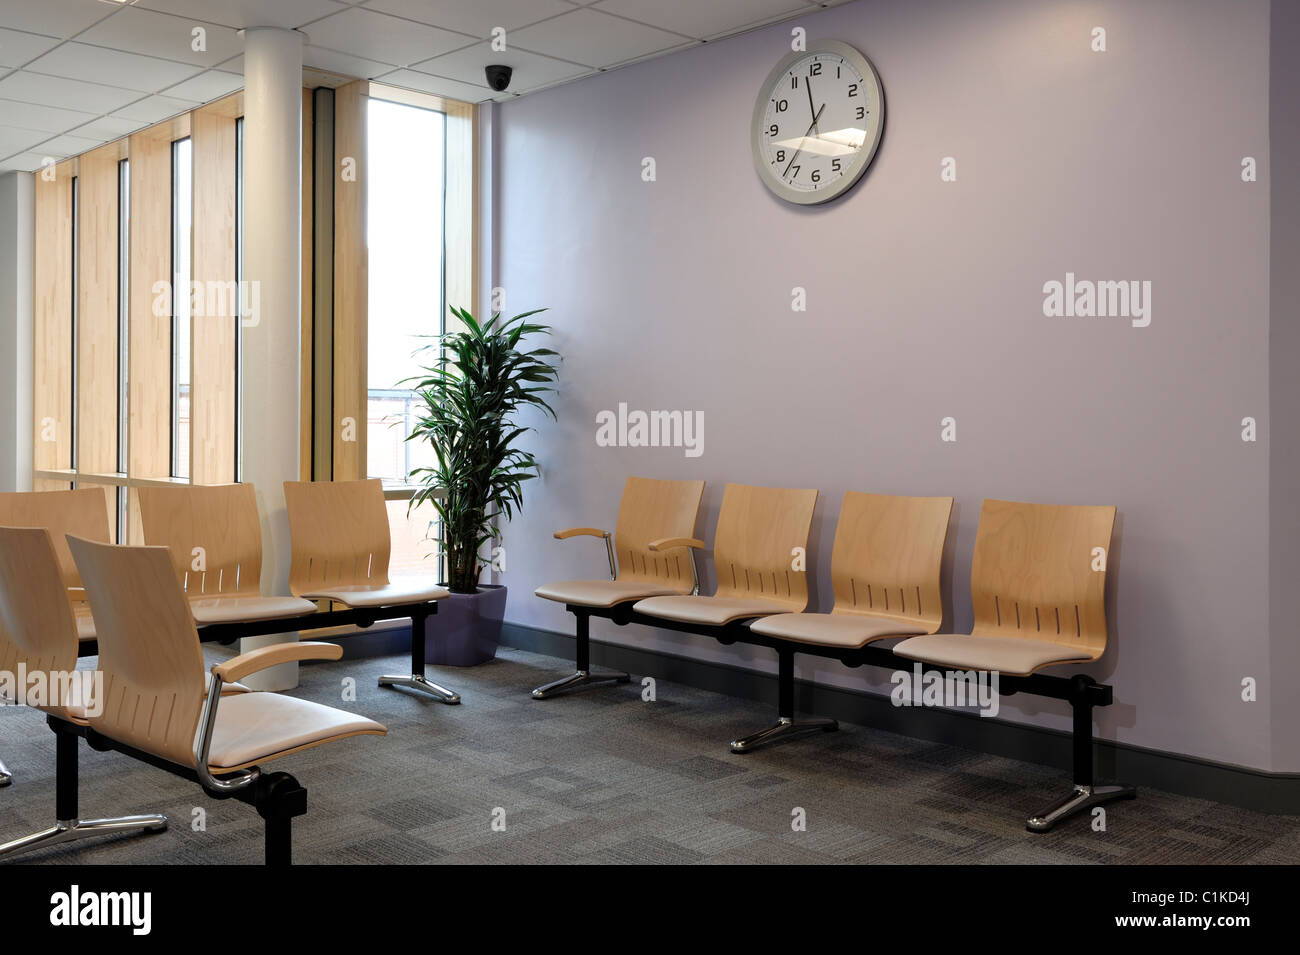 Salle d'attente Photo Stock